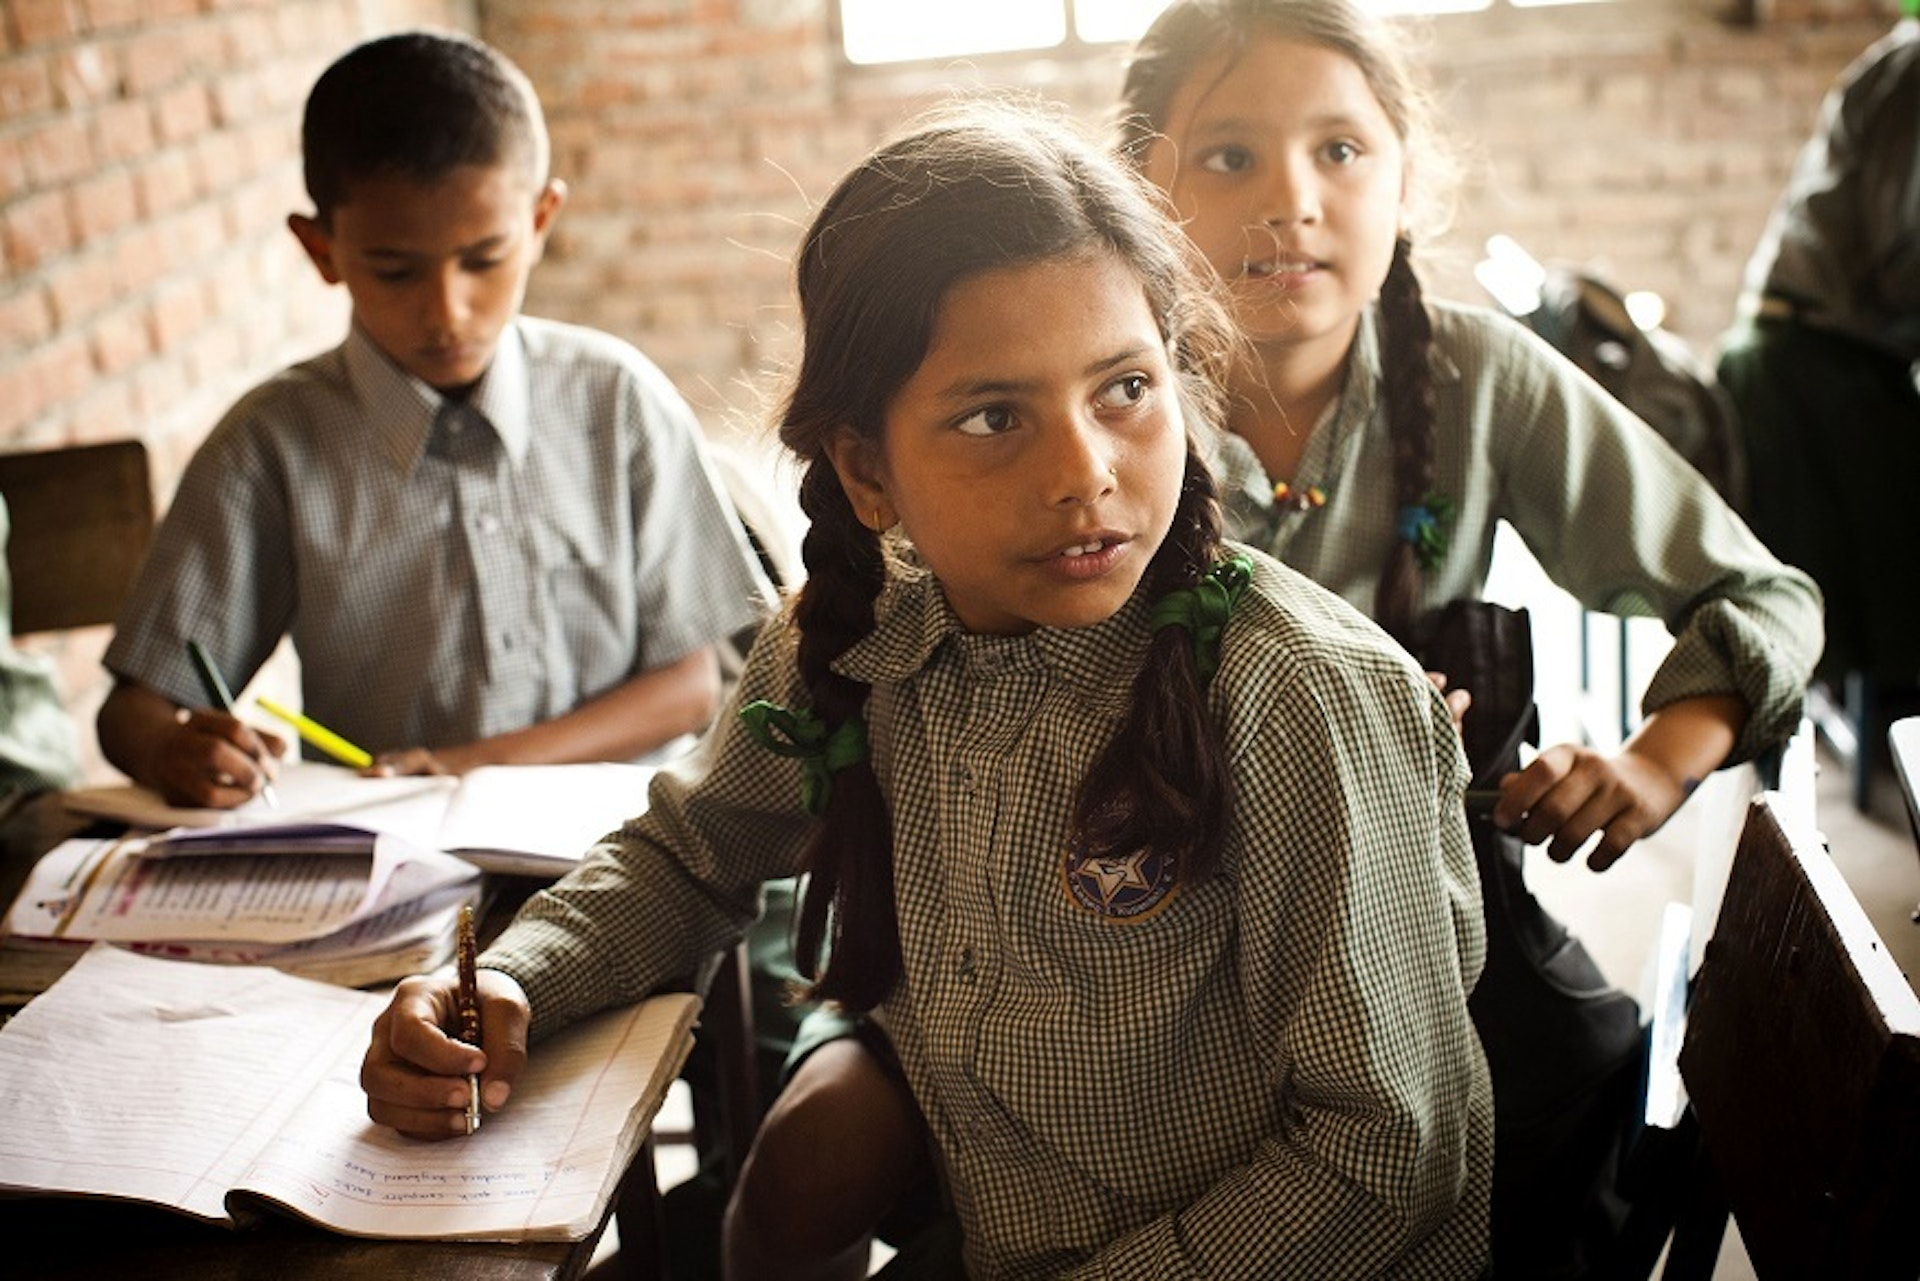 Nepalese school children sit and learn at Laxman Ganj village school. The girl in the foreground has long plaited hair and is writing, as are her peers